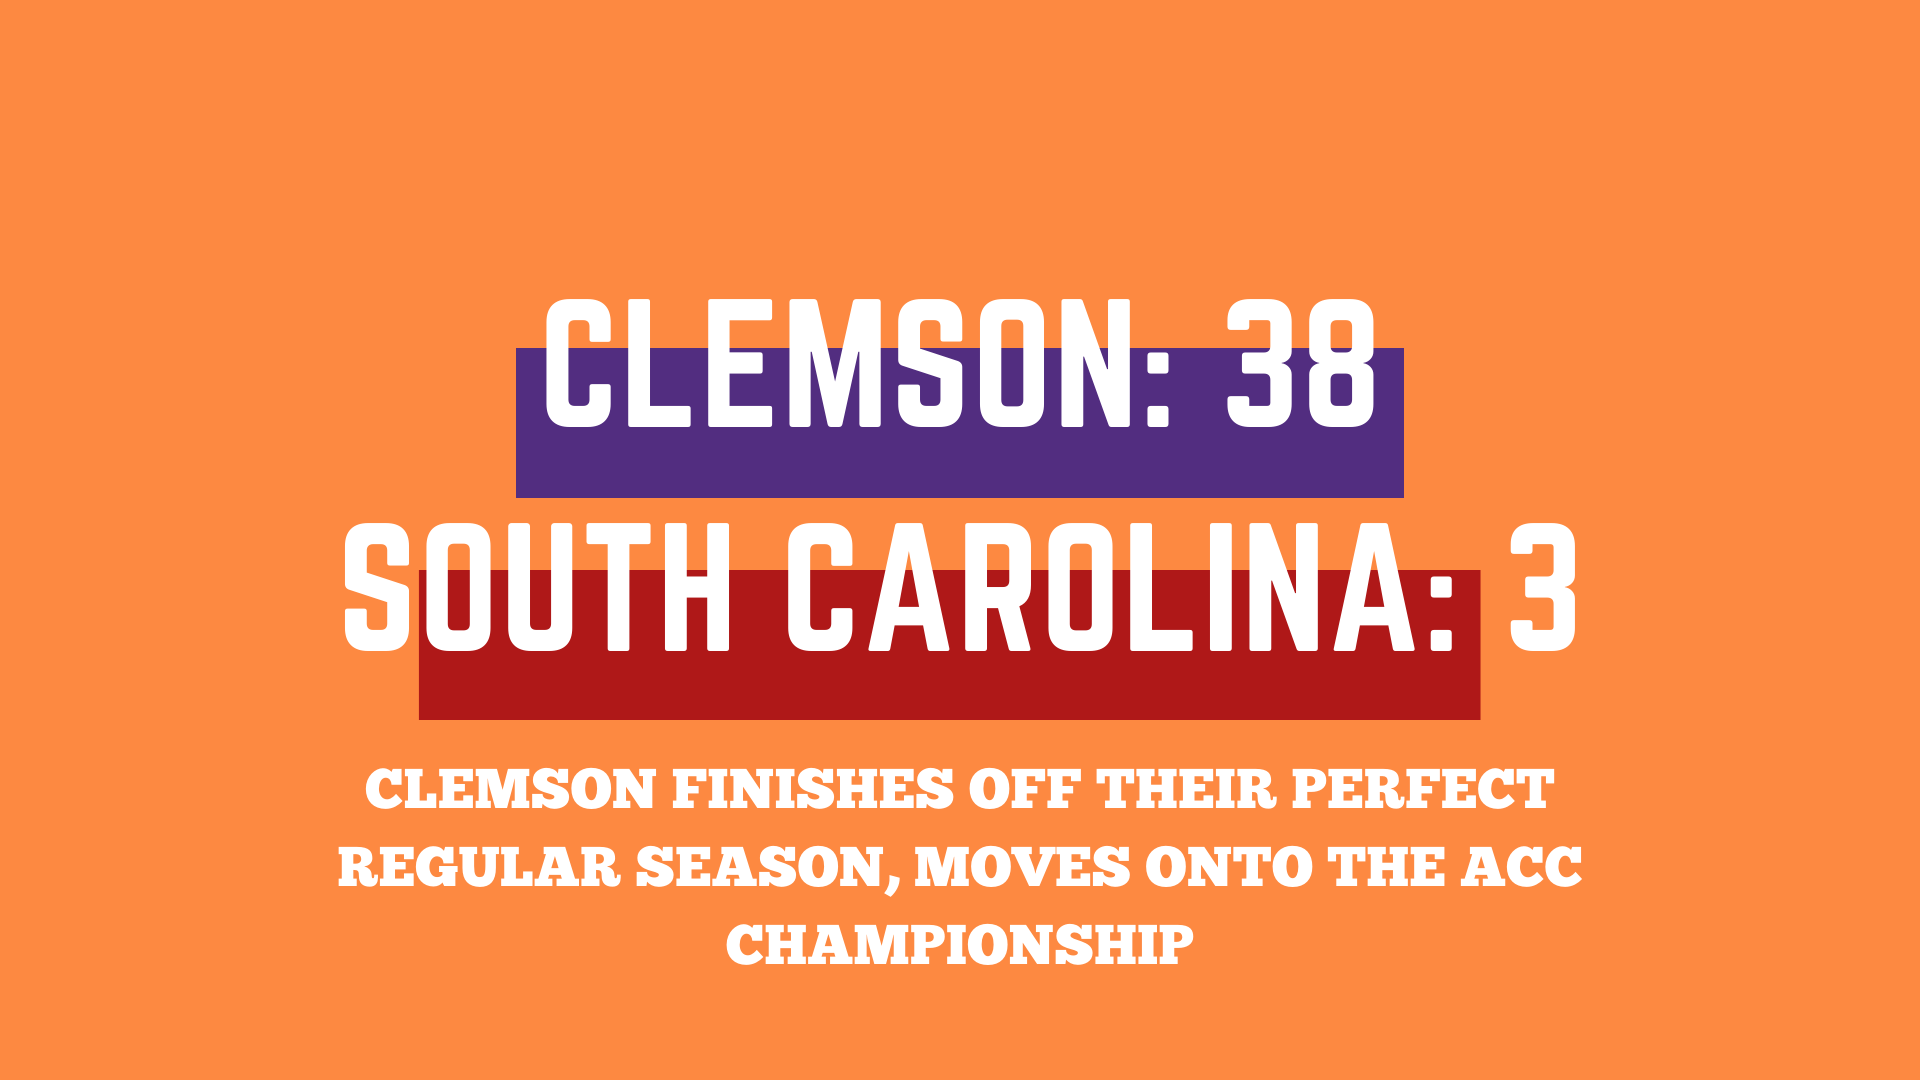 Clemson finishes off a perfect regular season, and the ACC Championship awaits